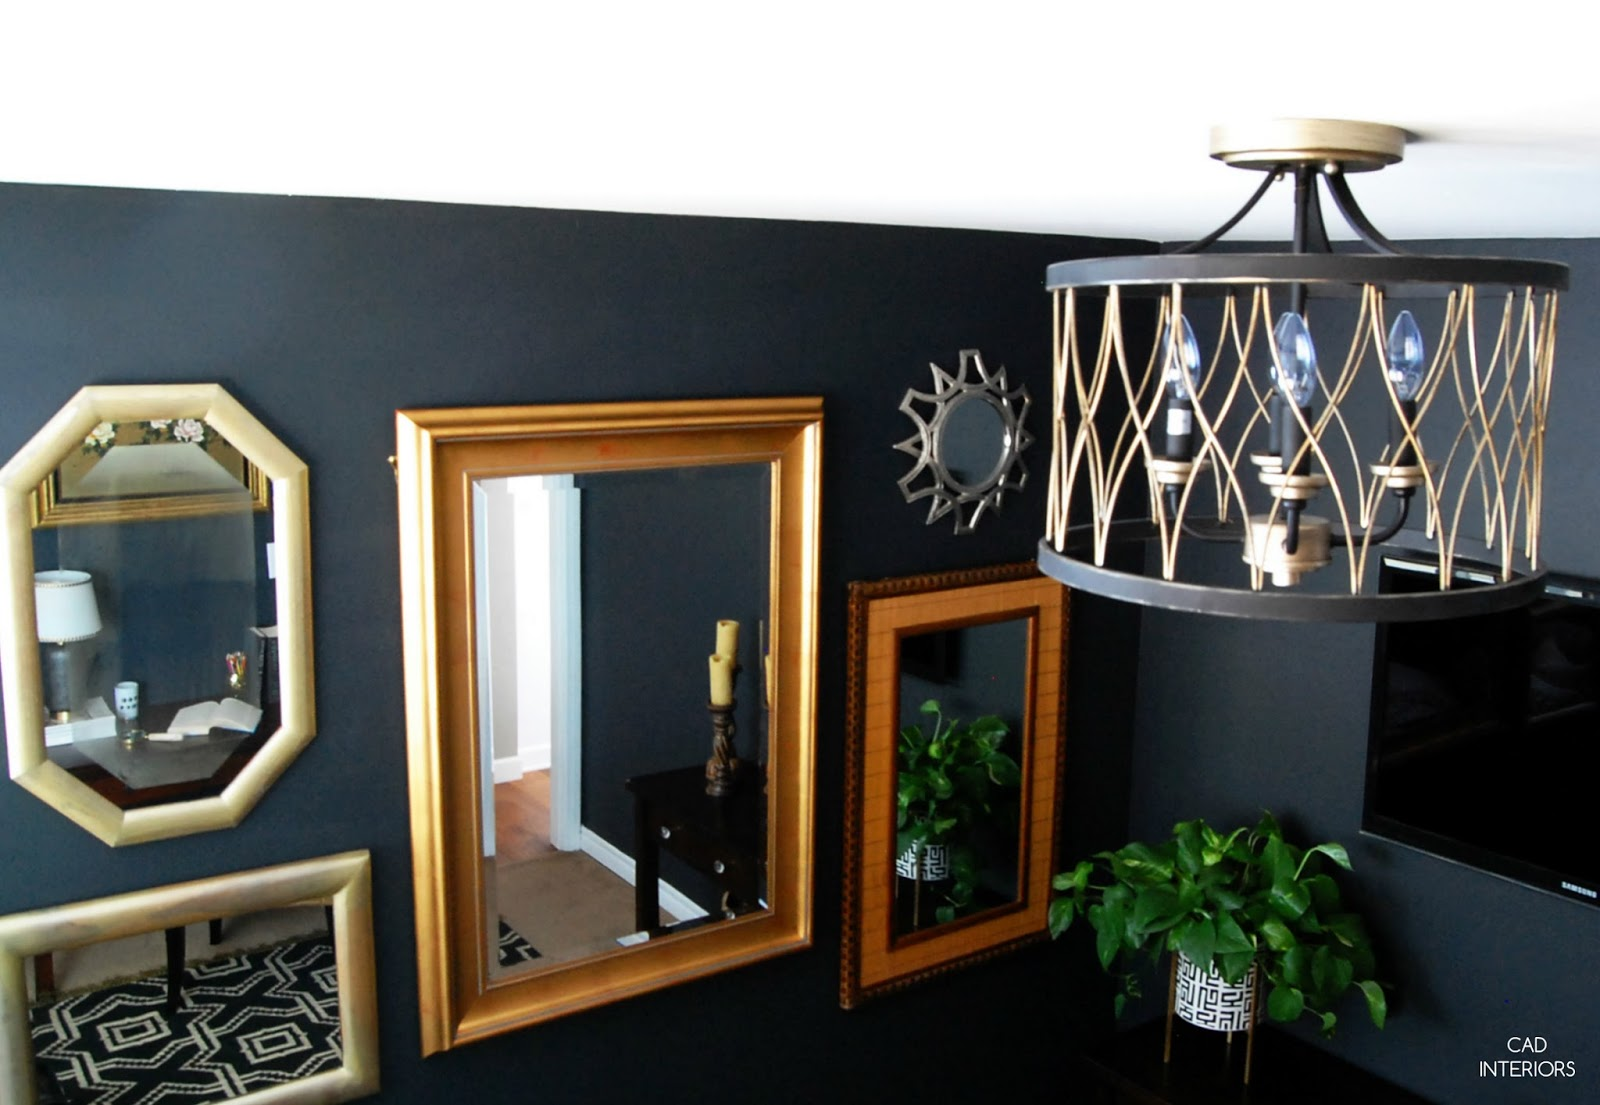 one room challenge bedroom makeover interior design decorating diy home improvement black brass modern vintage eclectic decor mirror gallery wall